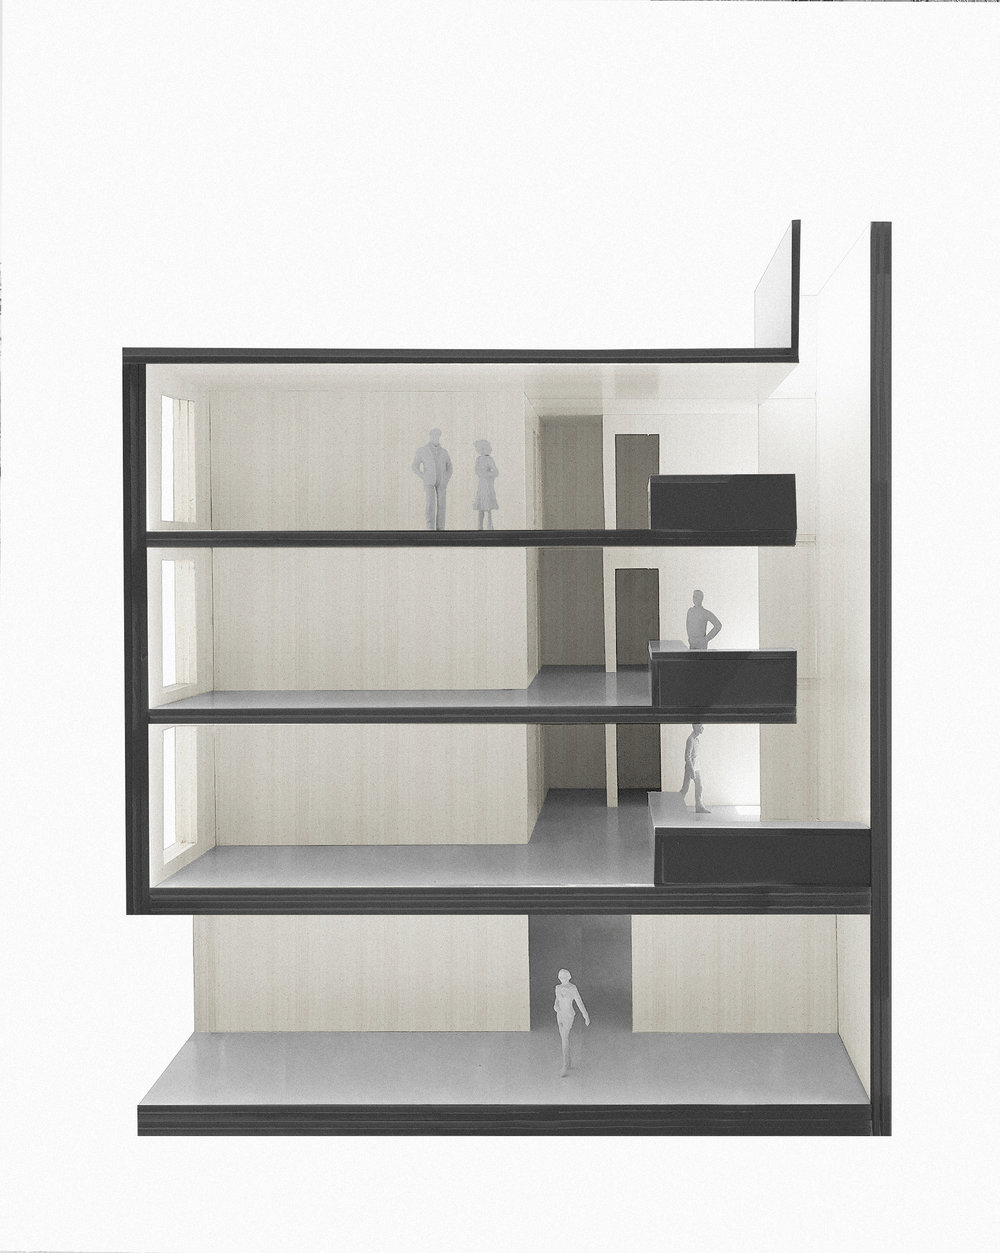 Sectional Model with Lightwell